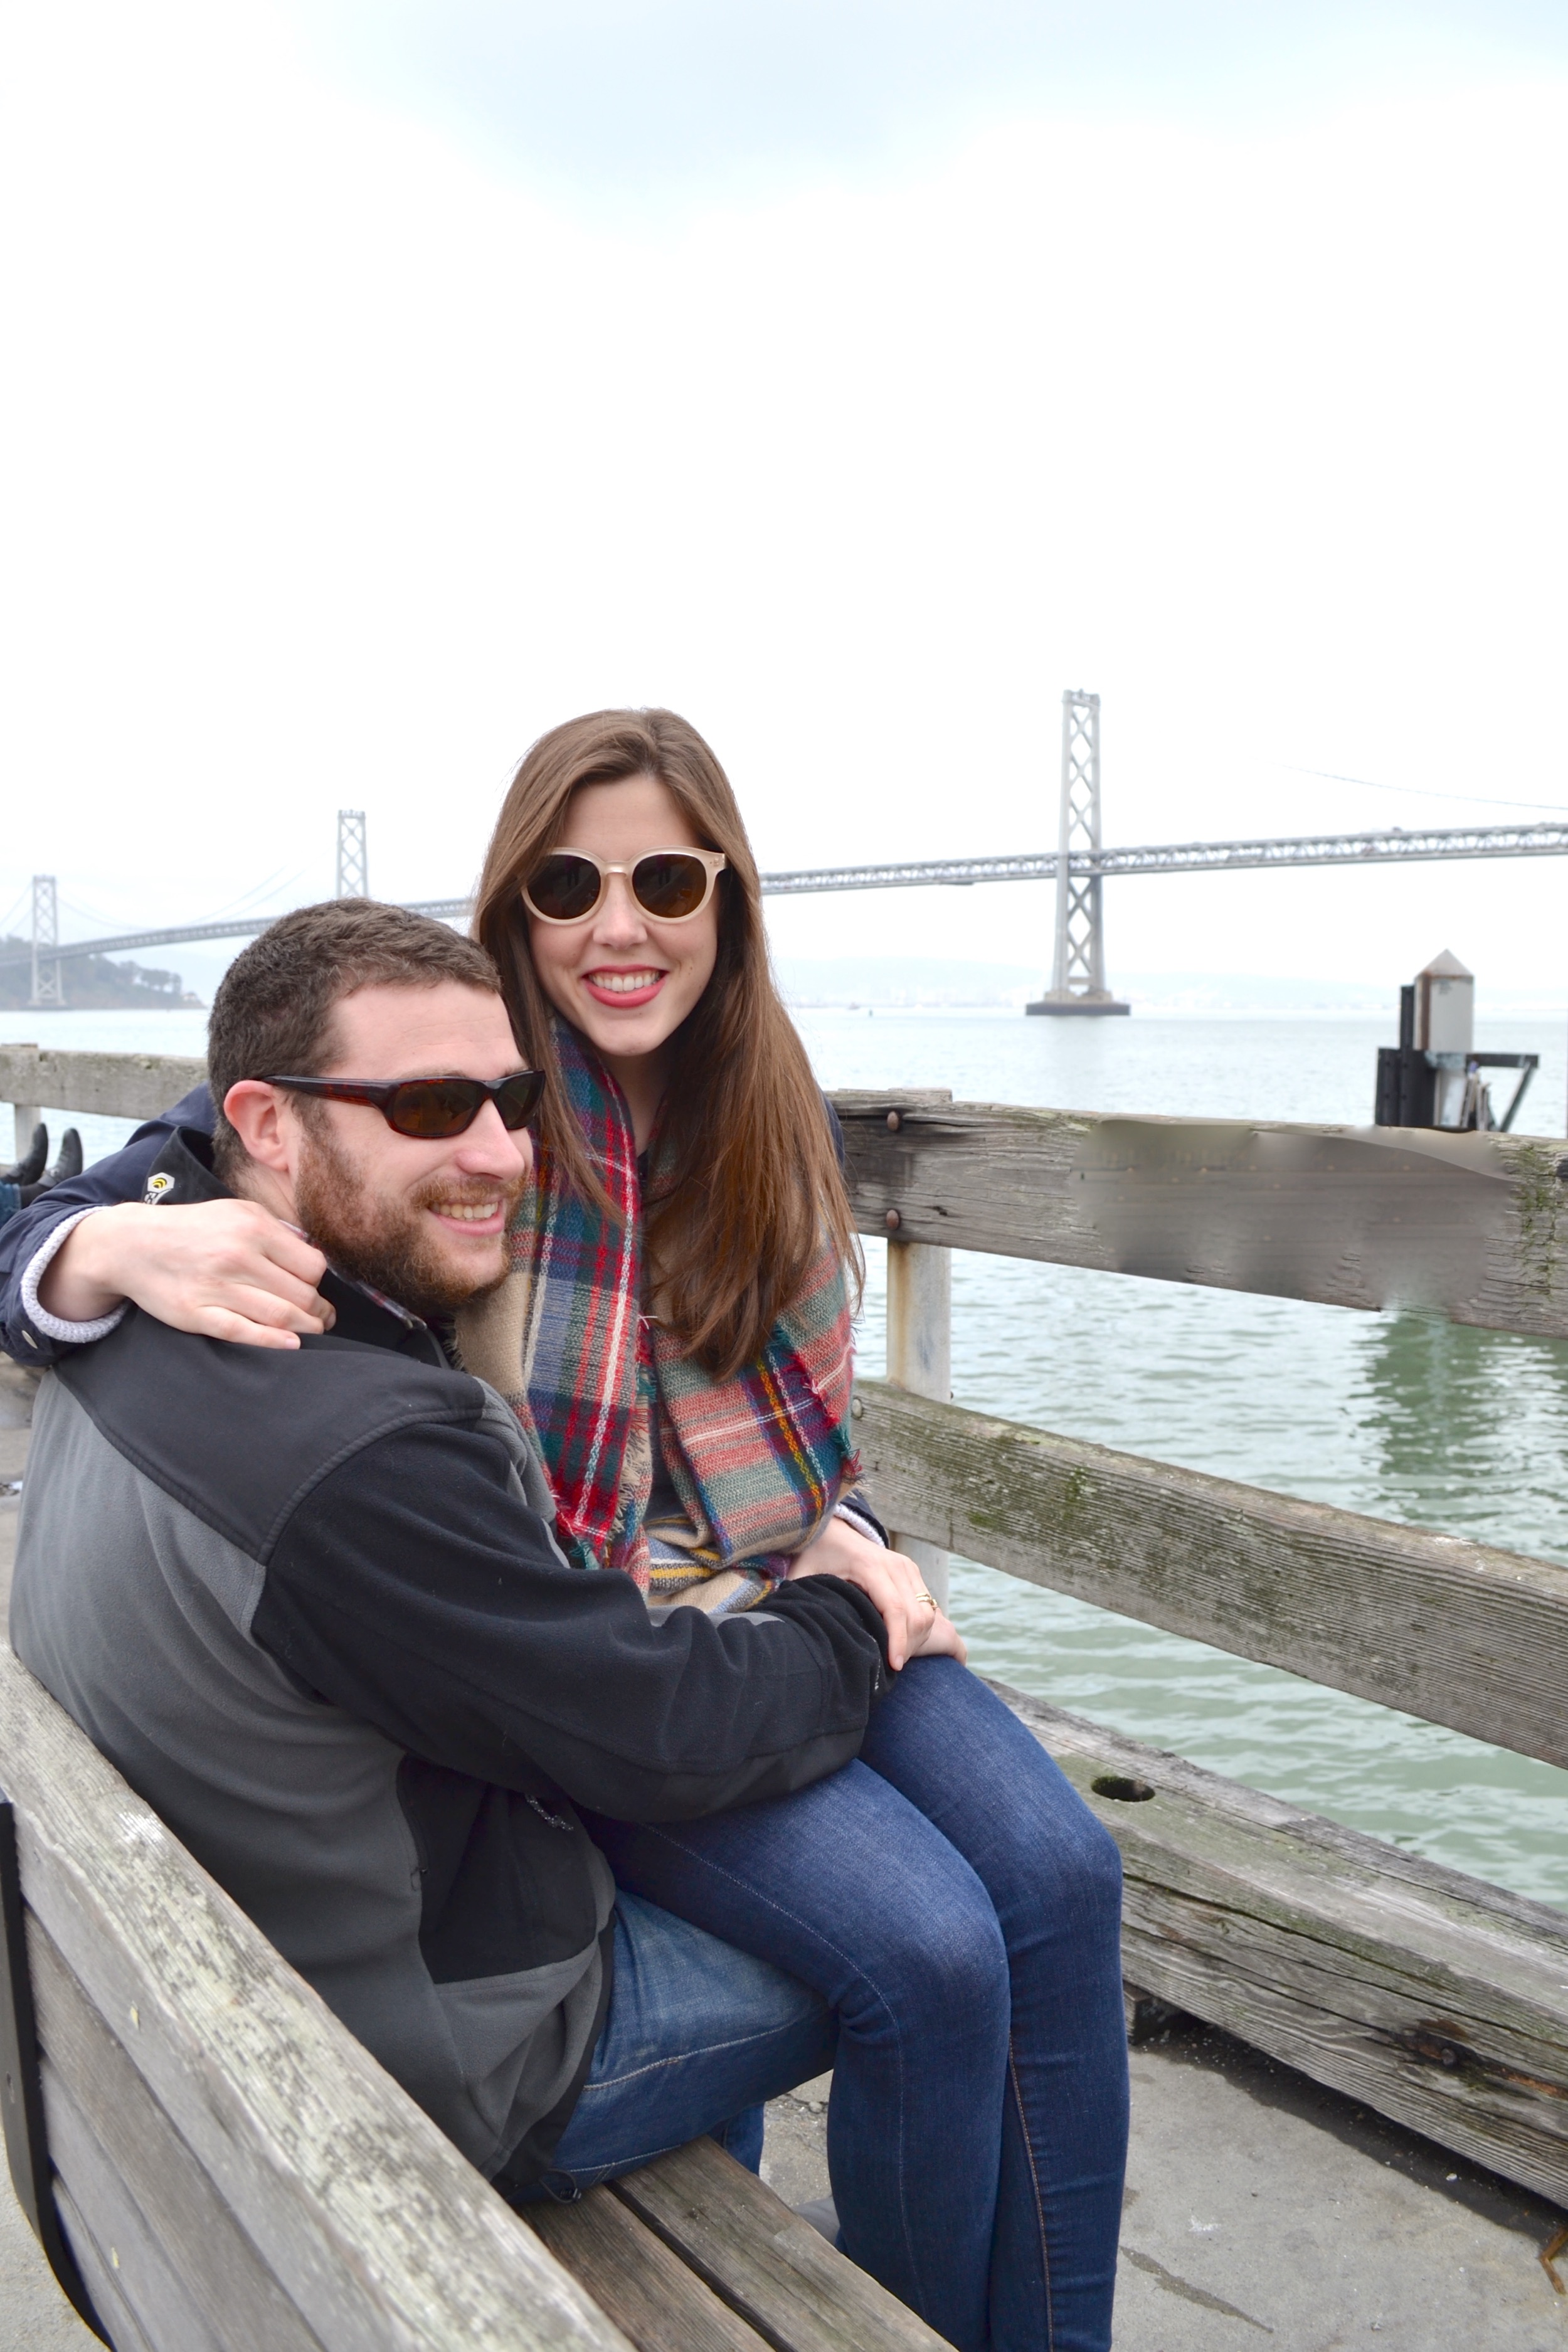 Taking in the sites along the Embarcadero.